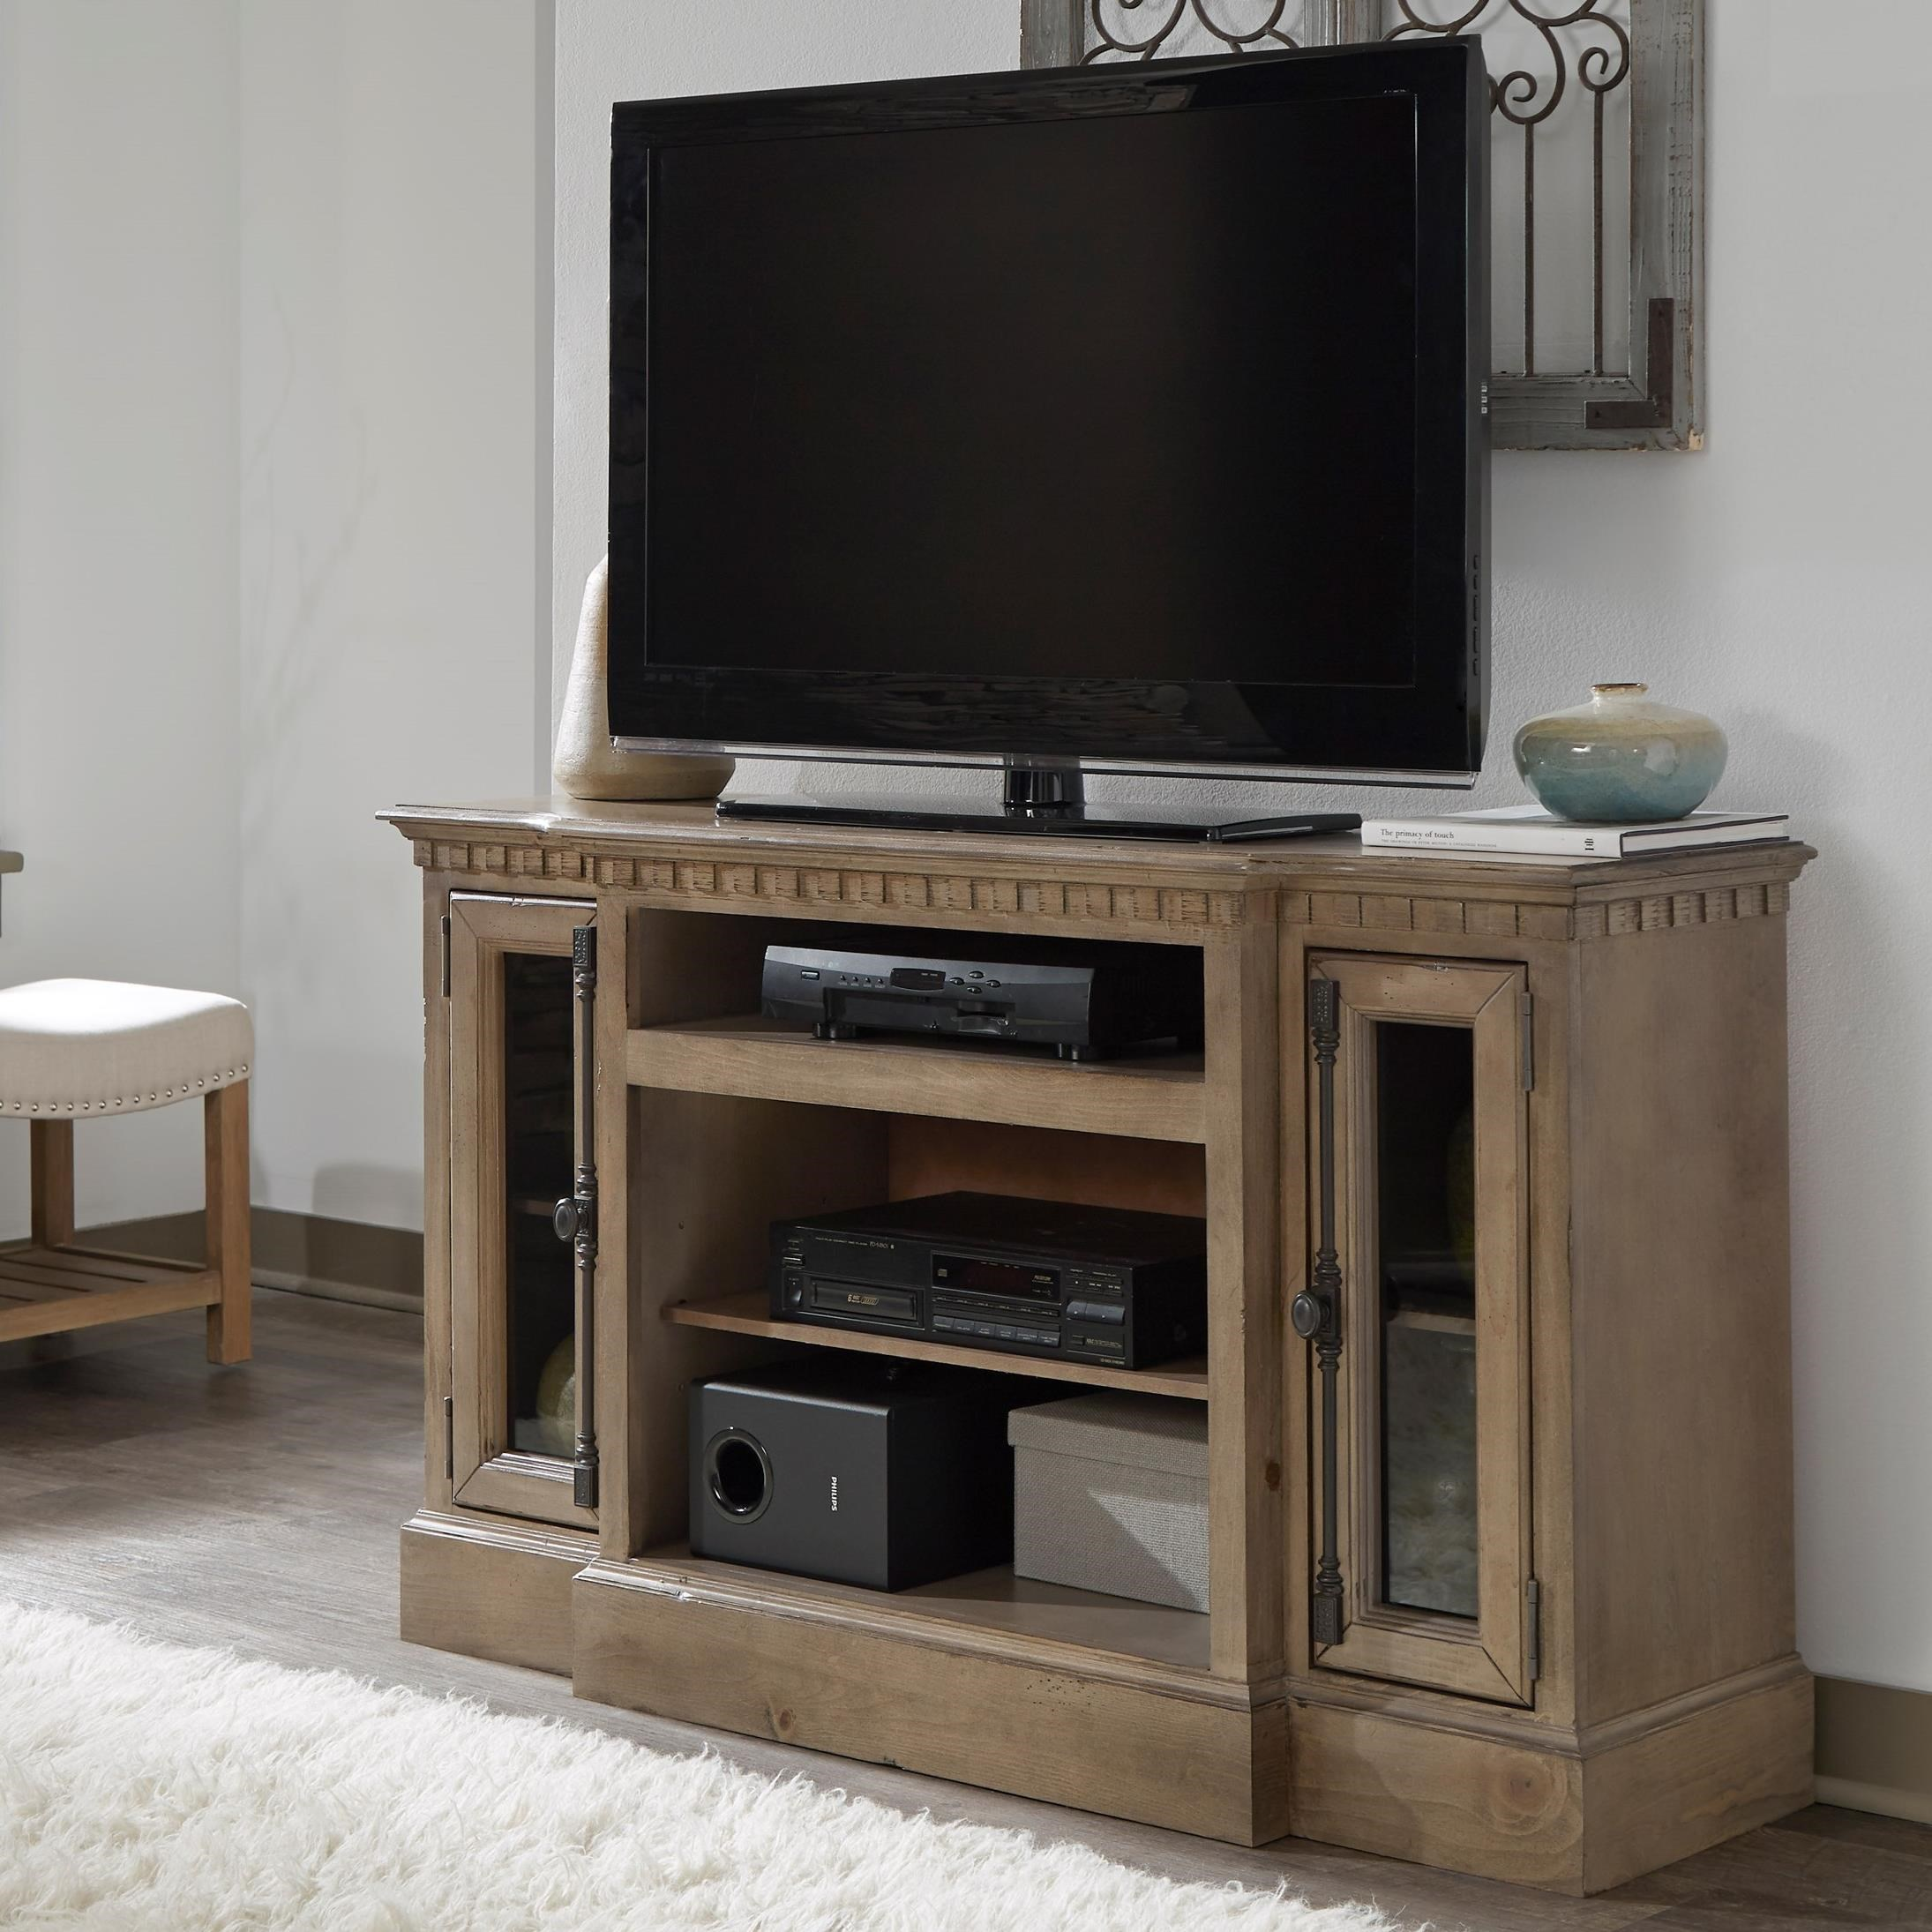 "Andover Court 54"" Console by Progressive Furniture at Catalog Outlet"